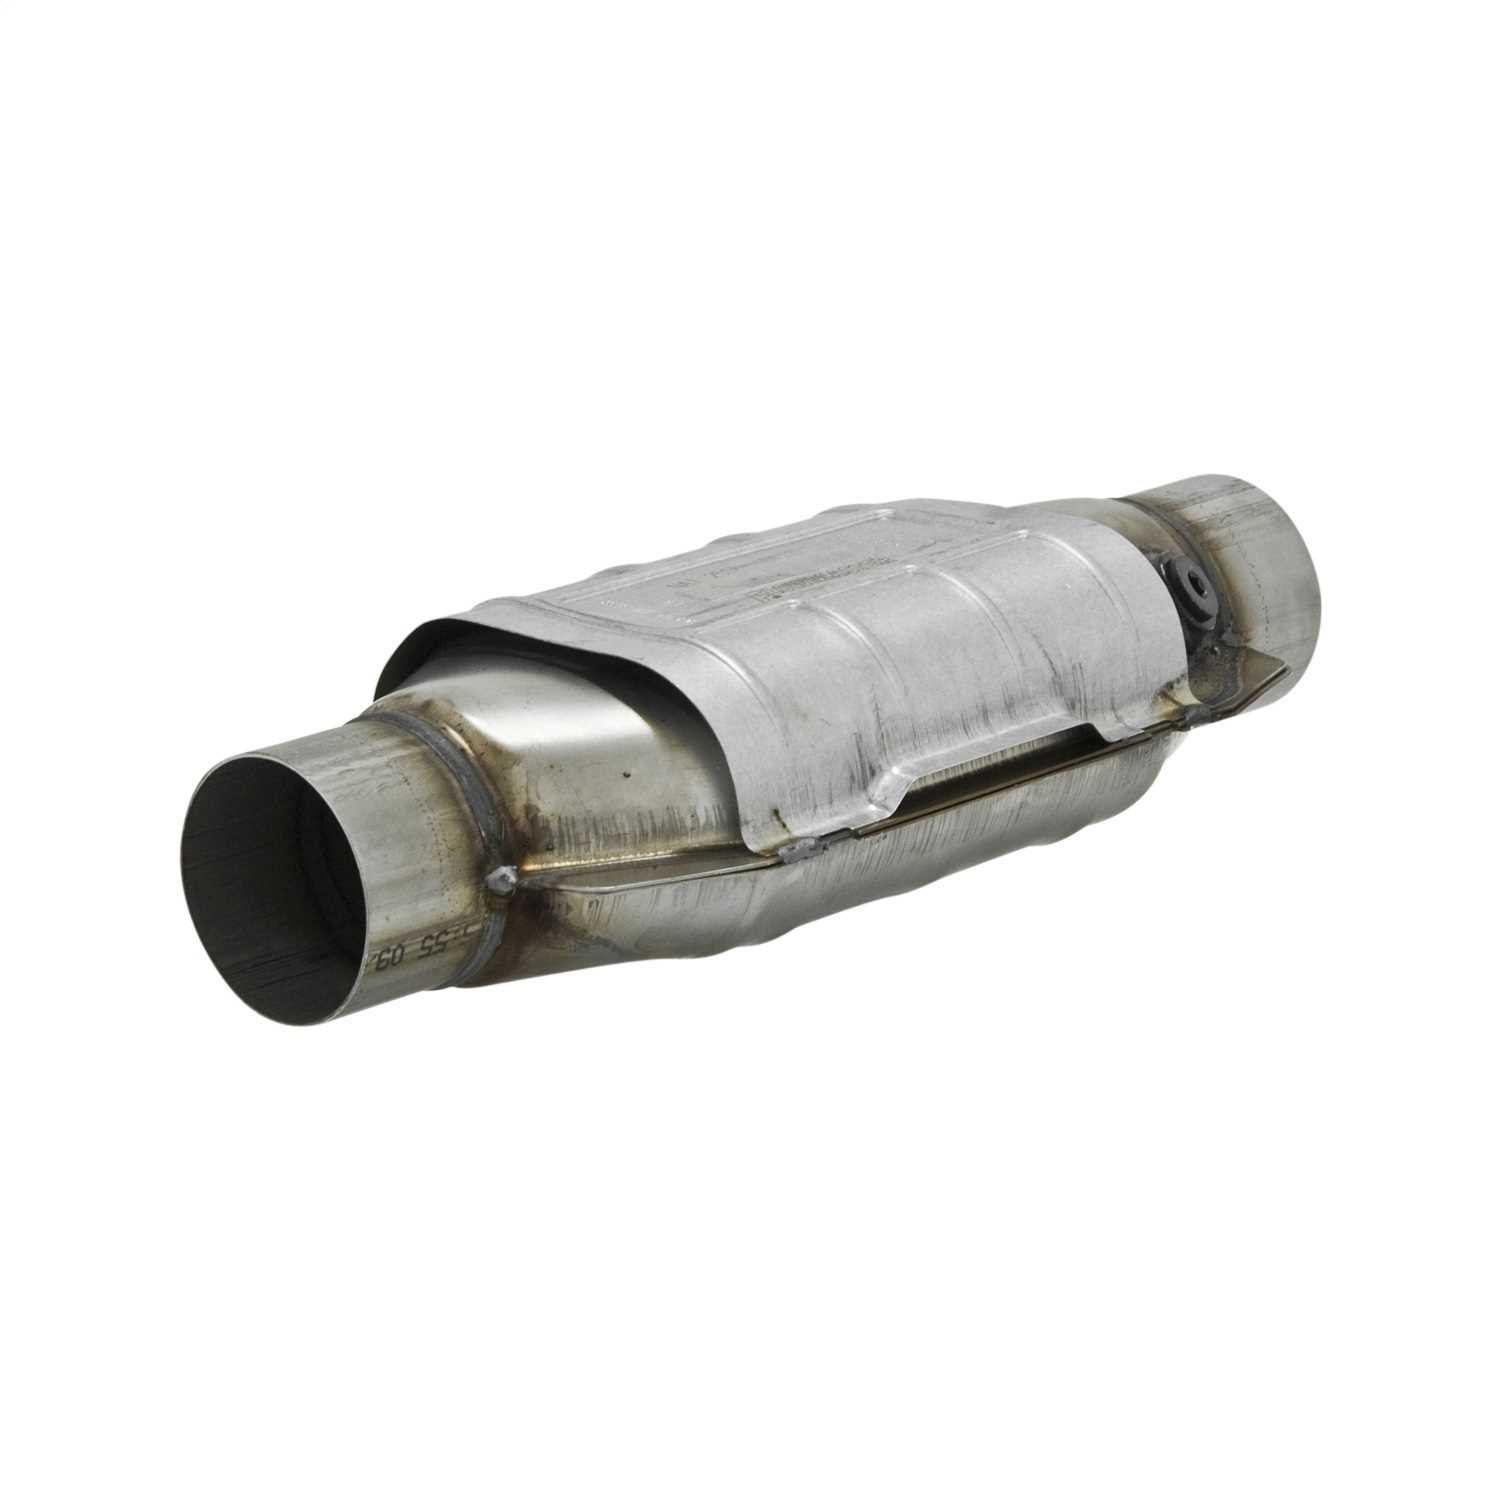 2822225 Flowmaster 49 State Catalytic Converters Universal Catalytic Converter